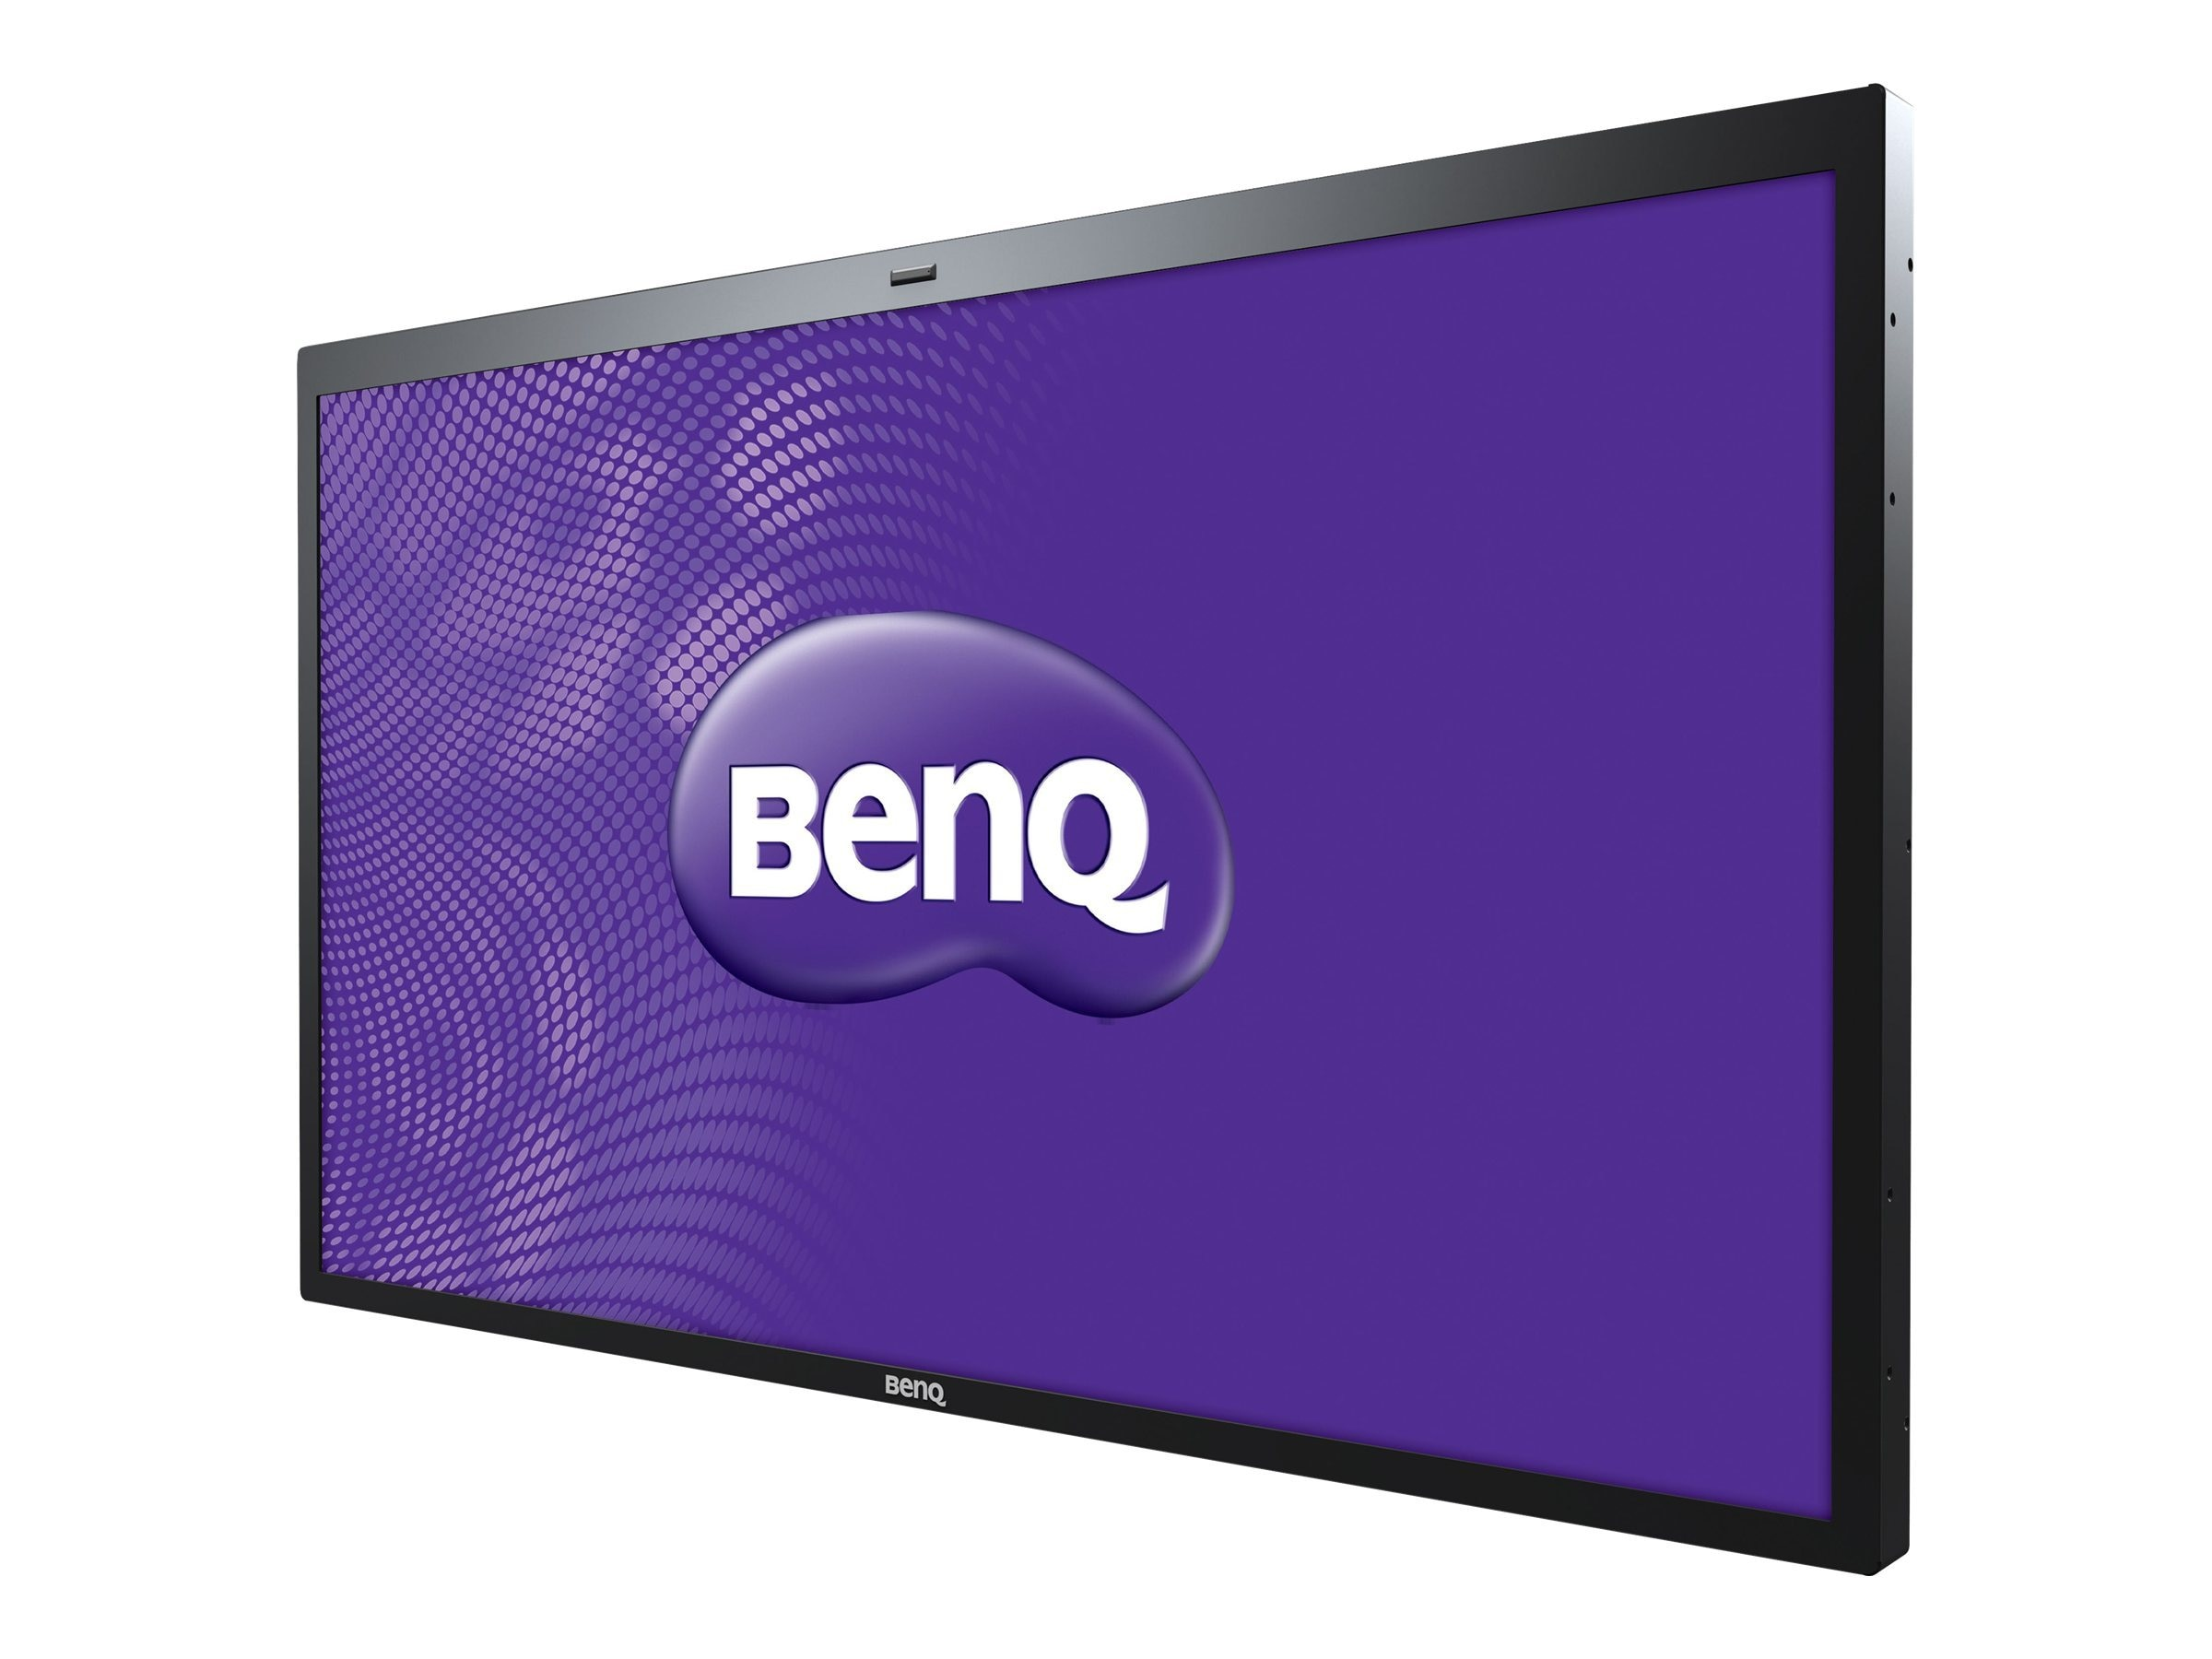 Benq 55 TL550 LED  Full HD Touch Display, Black, TL550, 14530782, Monitors - Large-Format LED-LCD